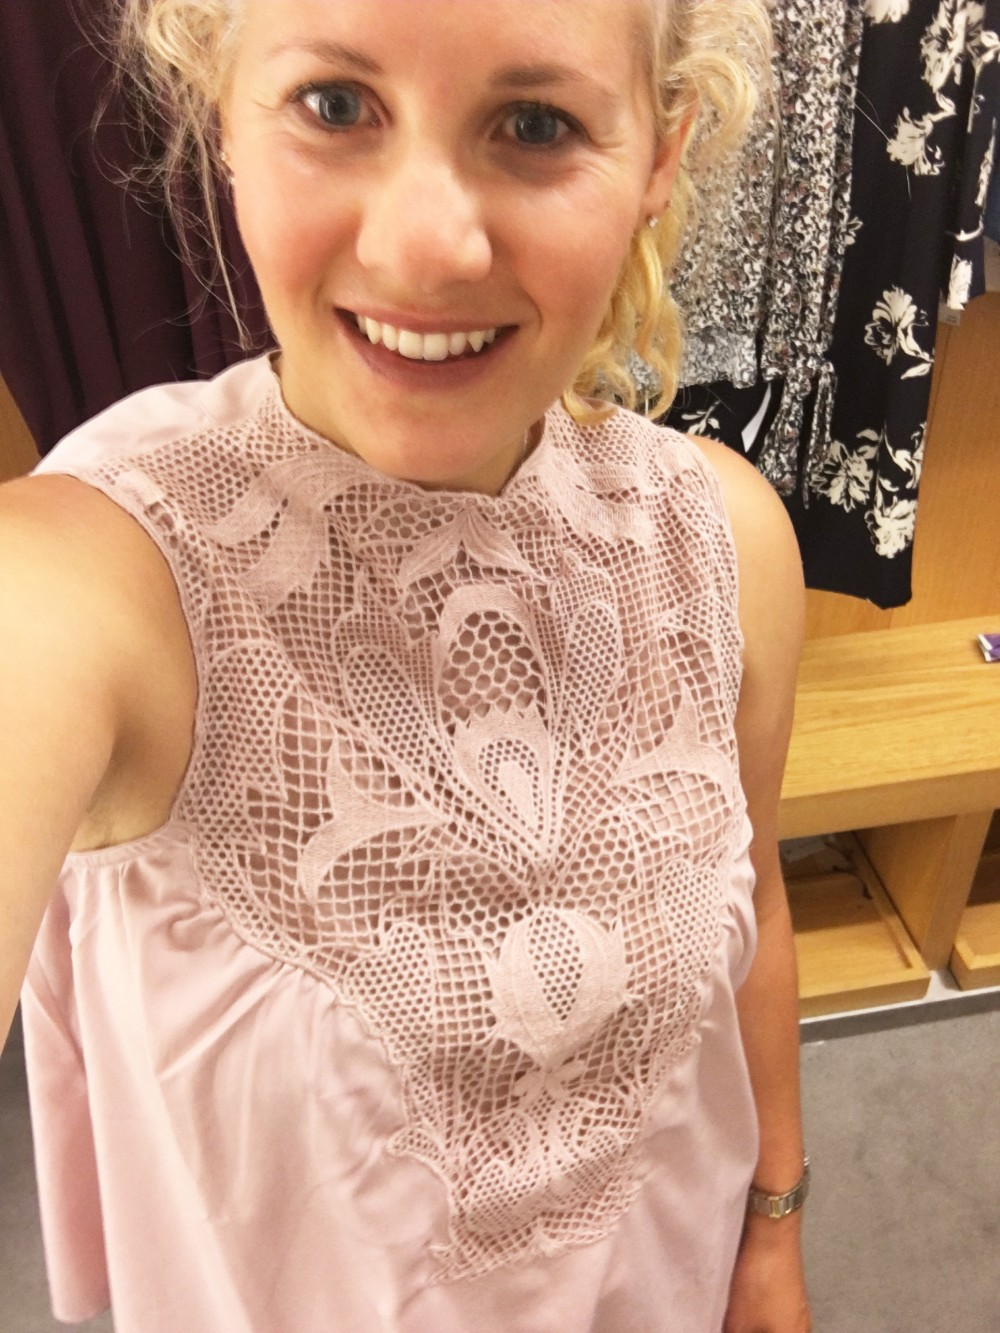 Dressing Room Diaries- Nordstrom Anniversary Sale-Fall Tops-Blogger Picks for the NSale-Nordstrom Sale-Fall Style-Fall Fashion 2017-Have Need Want 3